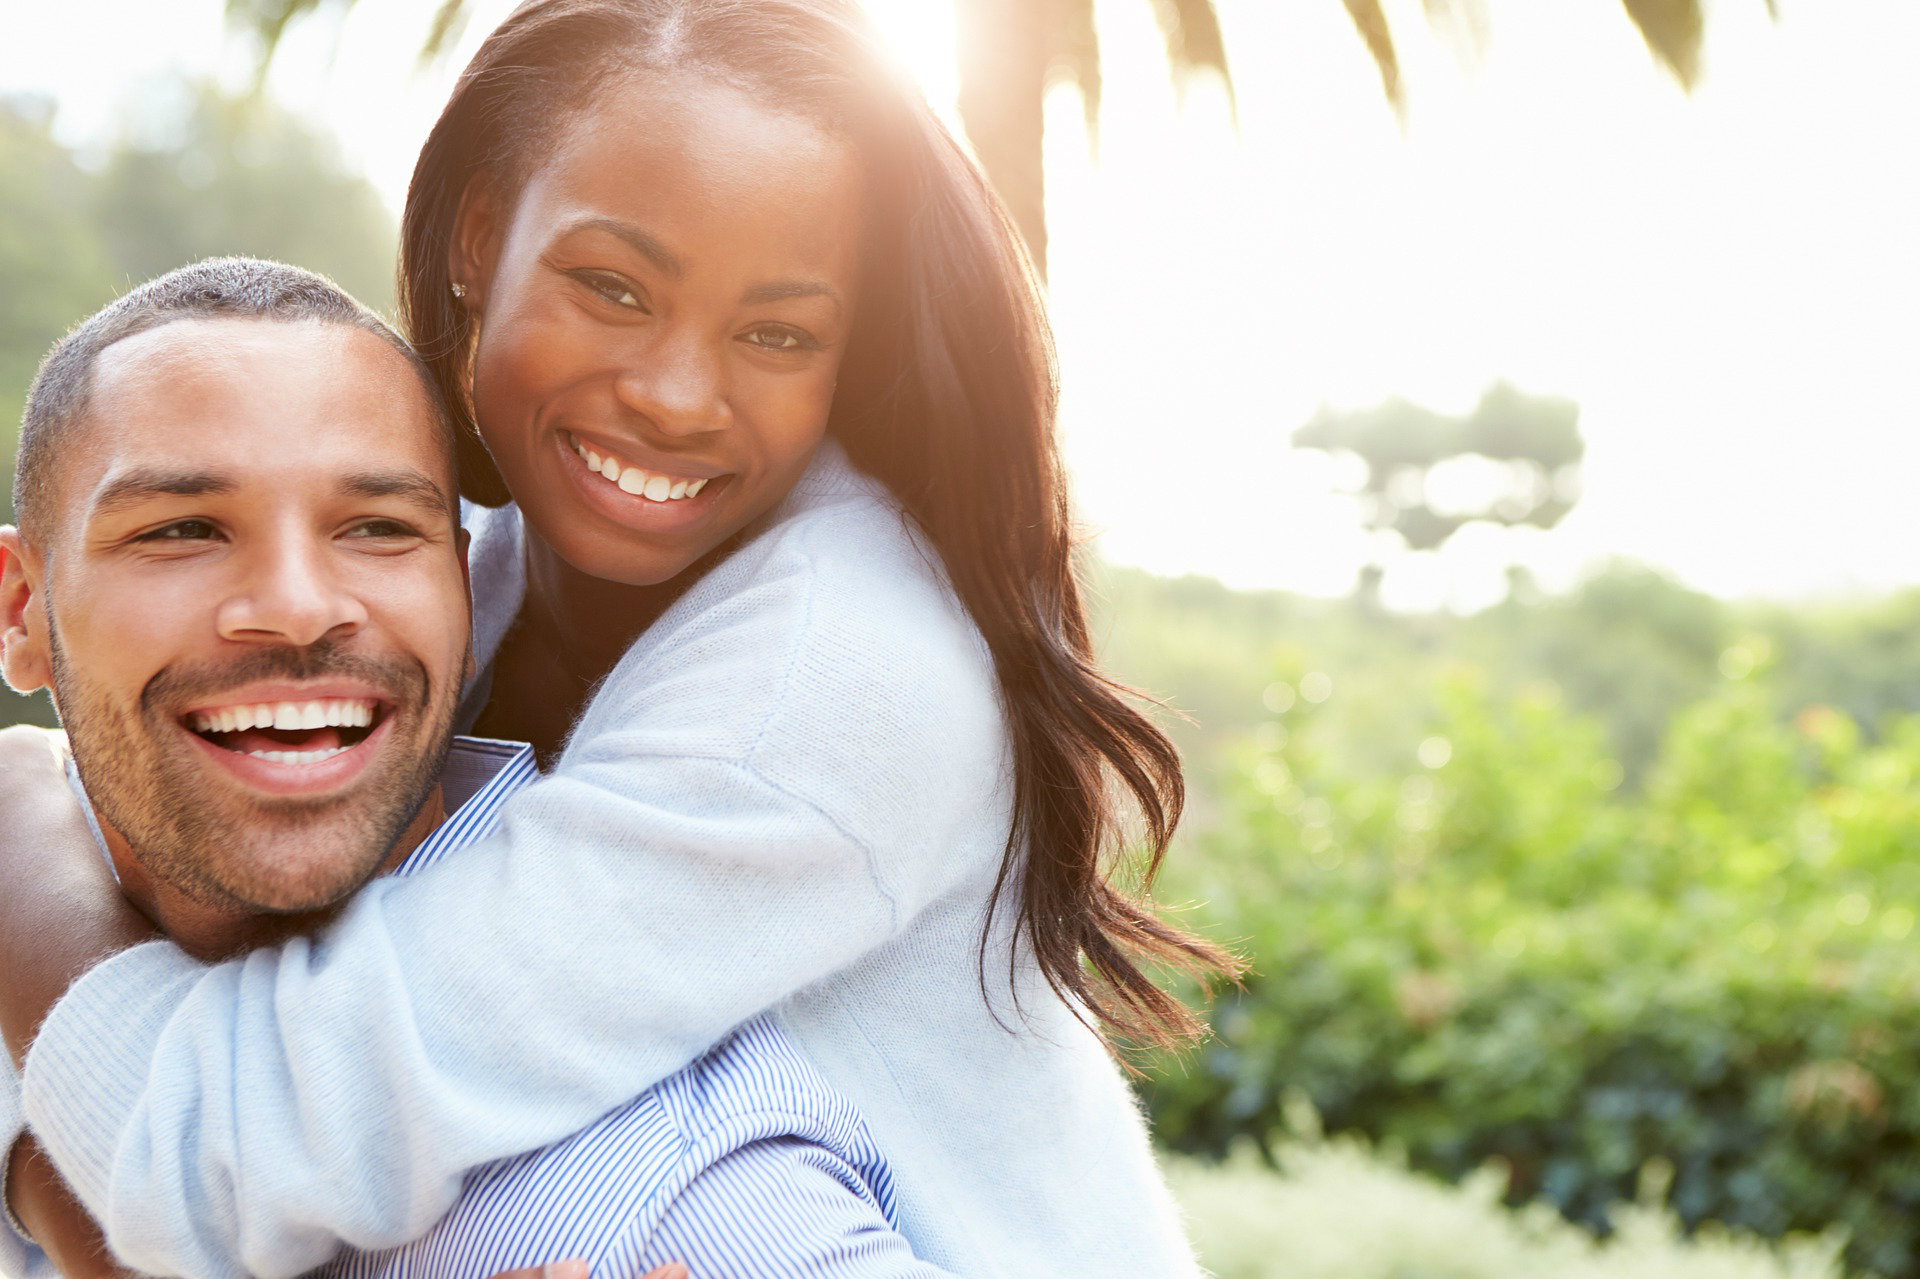 When to make it official dating